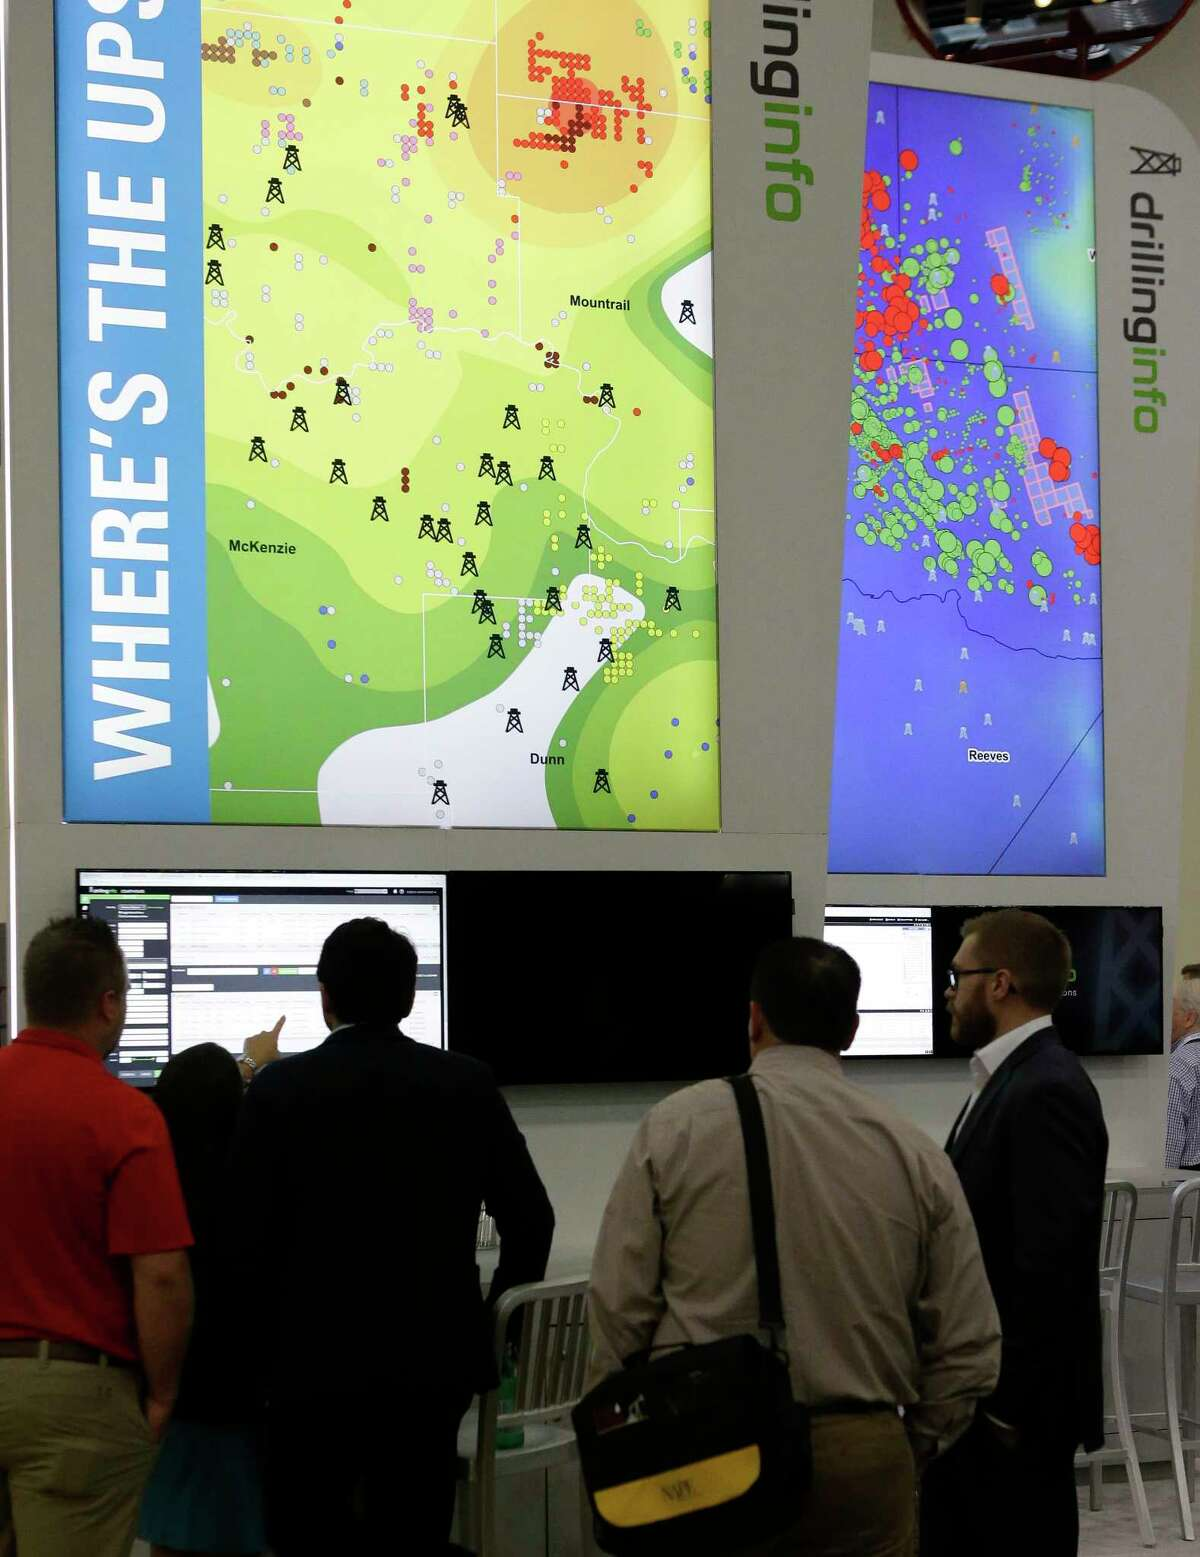 People are shown at the Drilling Info booth during the North American Prospect Expo (NAPE), an annual gathering of oil land buyers and sellers, at the George R. Brown Convention Center, 1001 Avenida De Las Americas, Thursday, Aug. 17, 2017, in Houston. ( Melissa Phillip / Houston Chronicle )